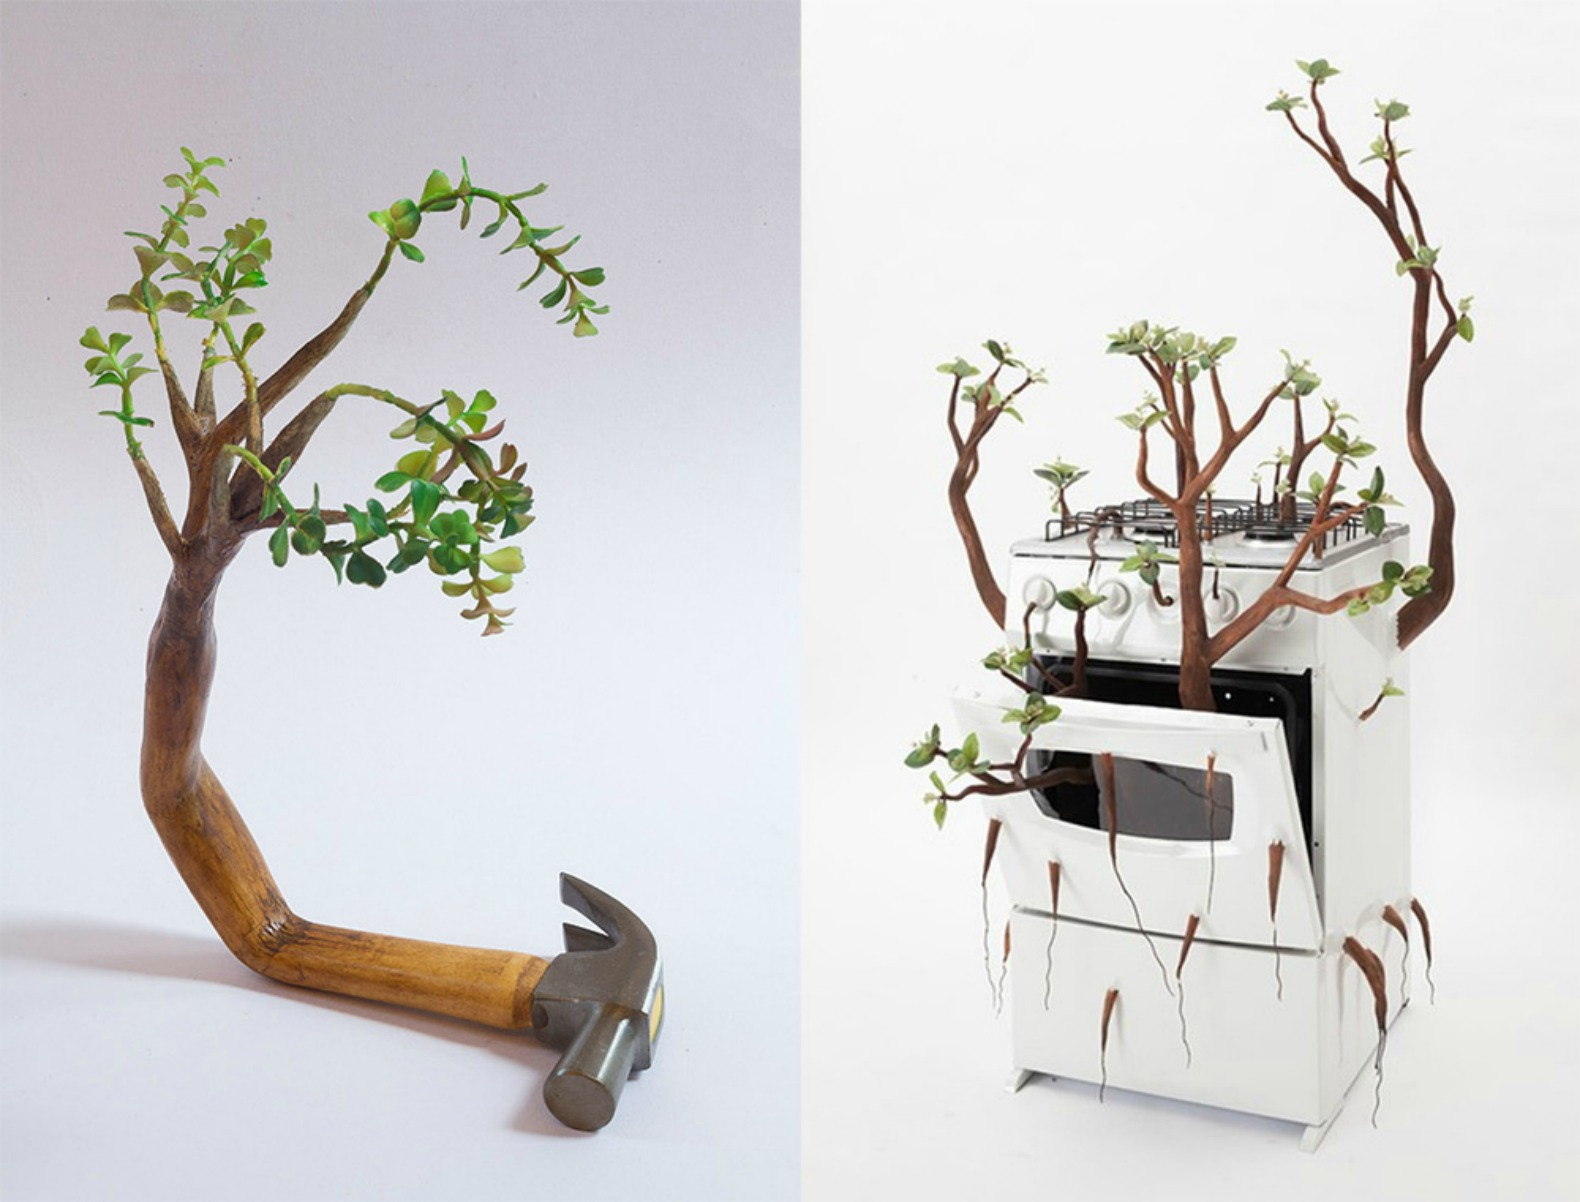 Everyday Objects Return To Their Roots By Sprouting